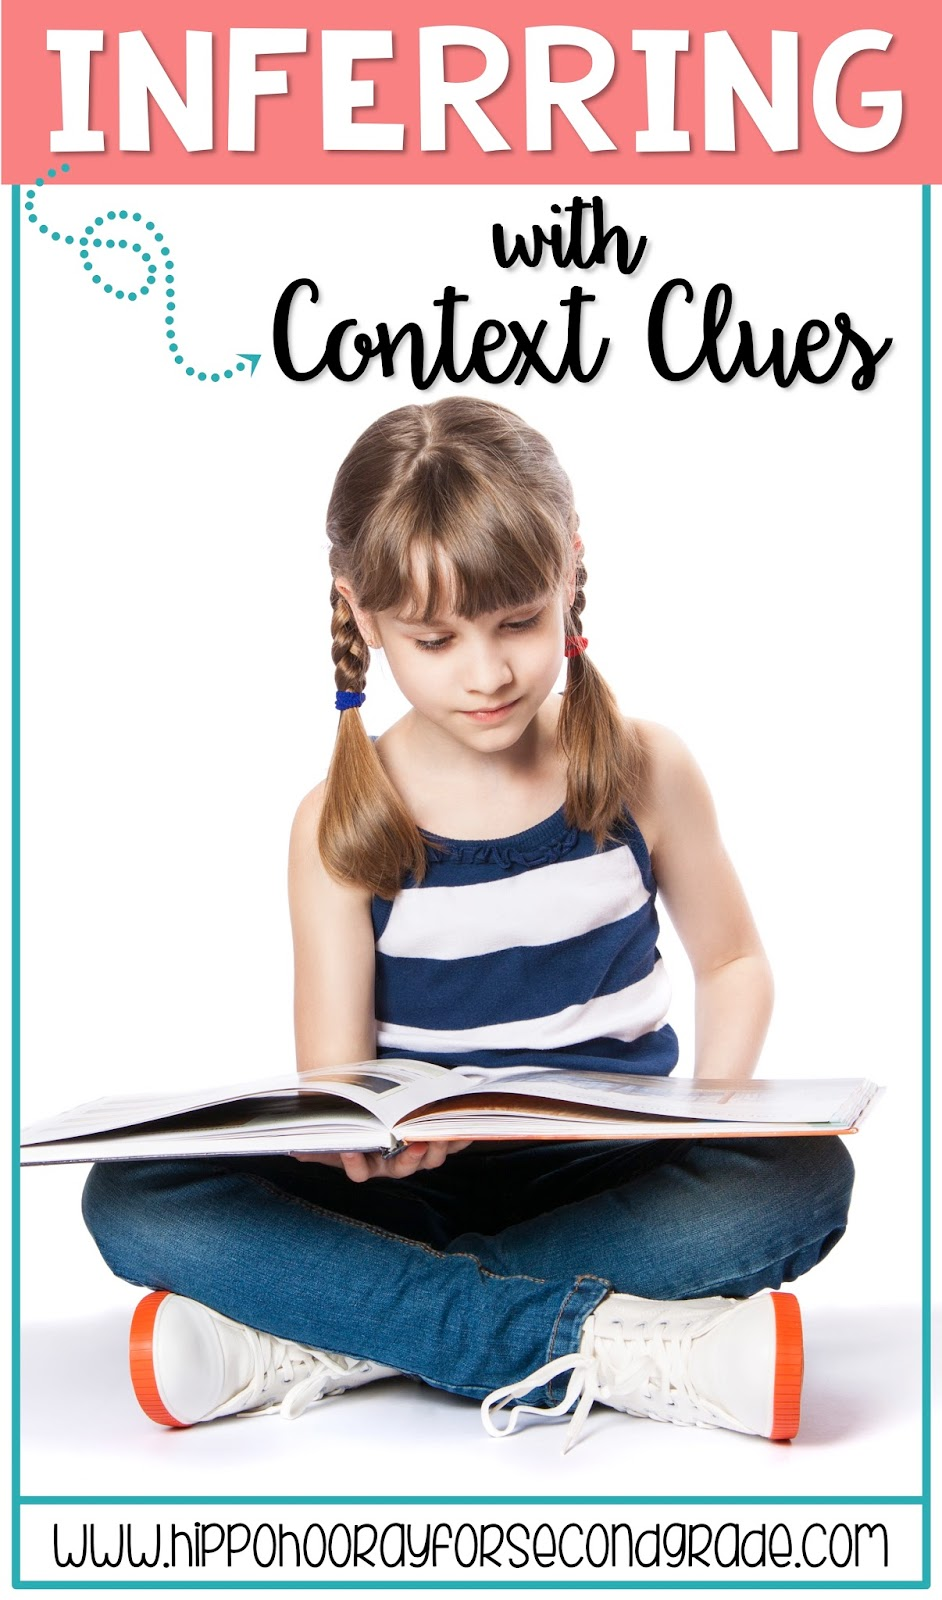 medium resolution of Inferring and Context Clues *FREEBIE* - Hippo Hooray for Second Grade!